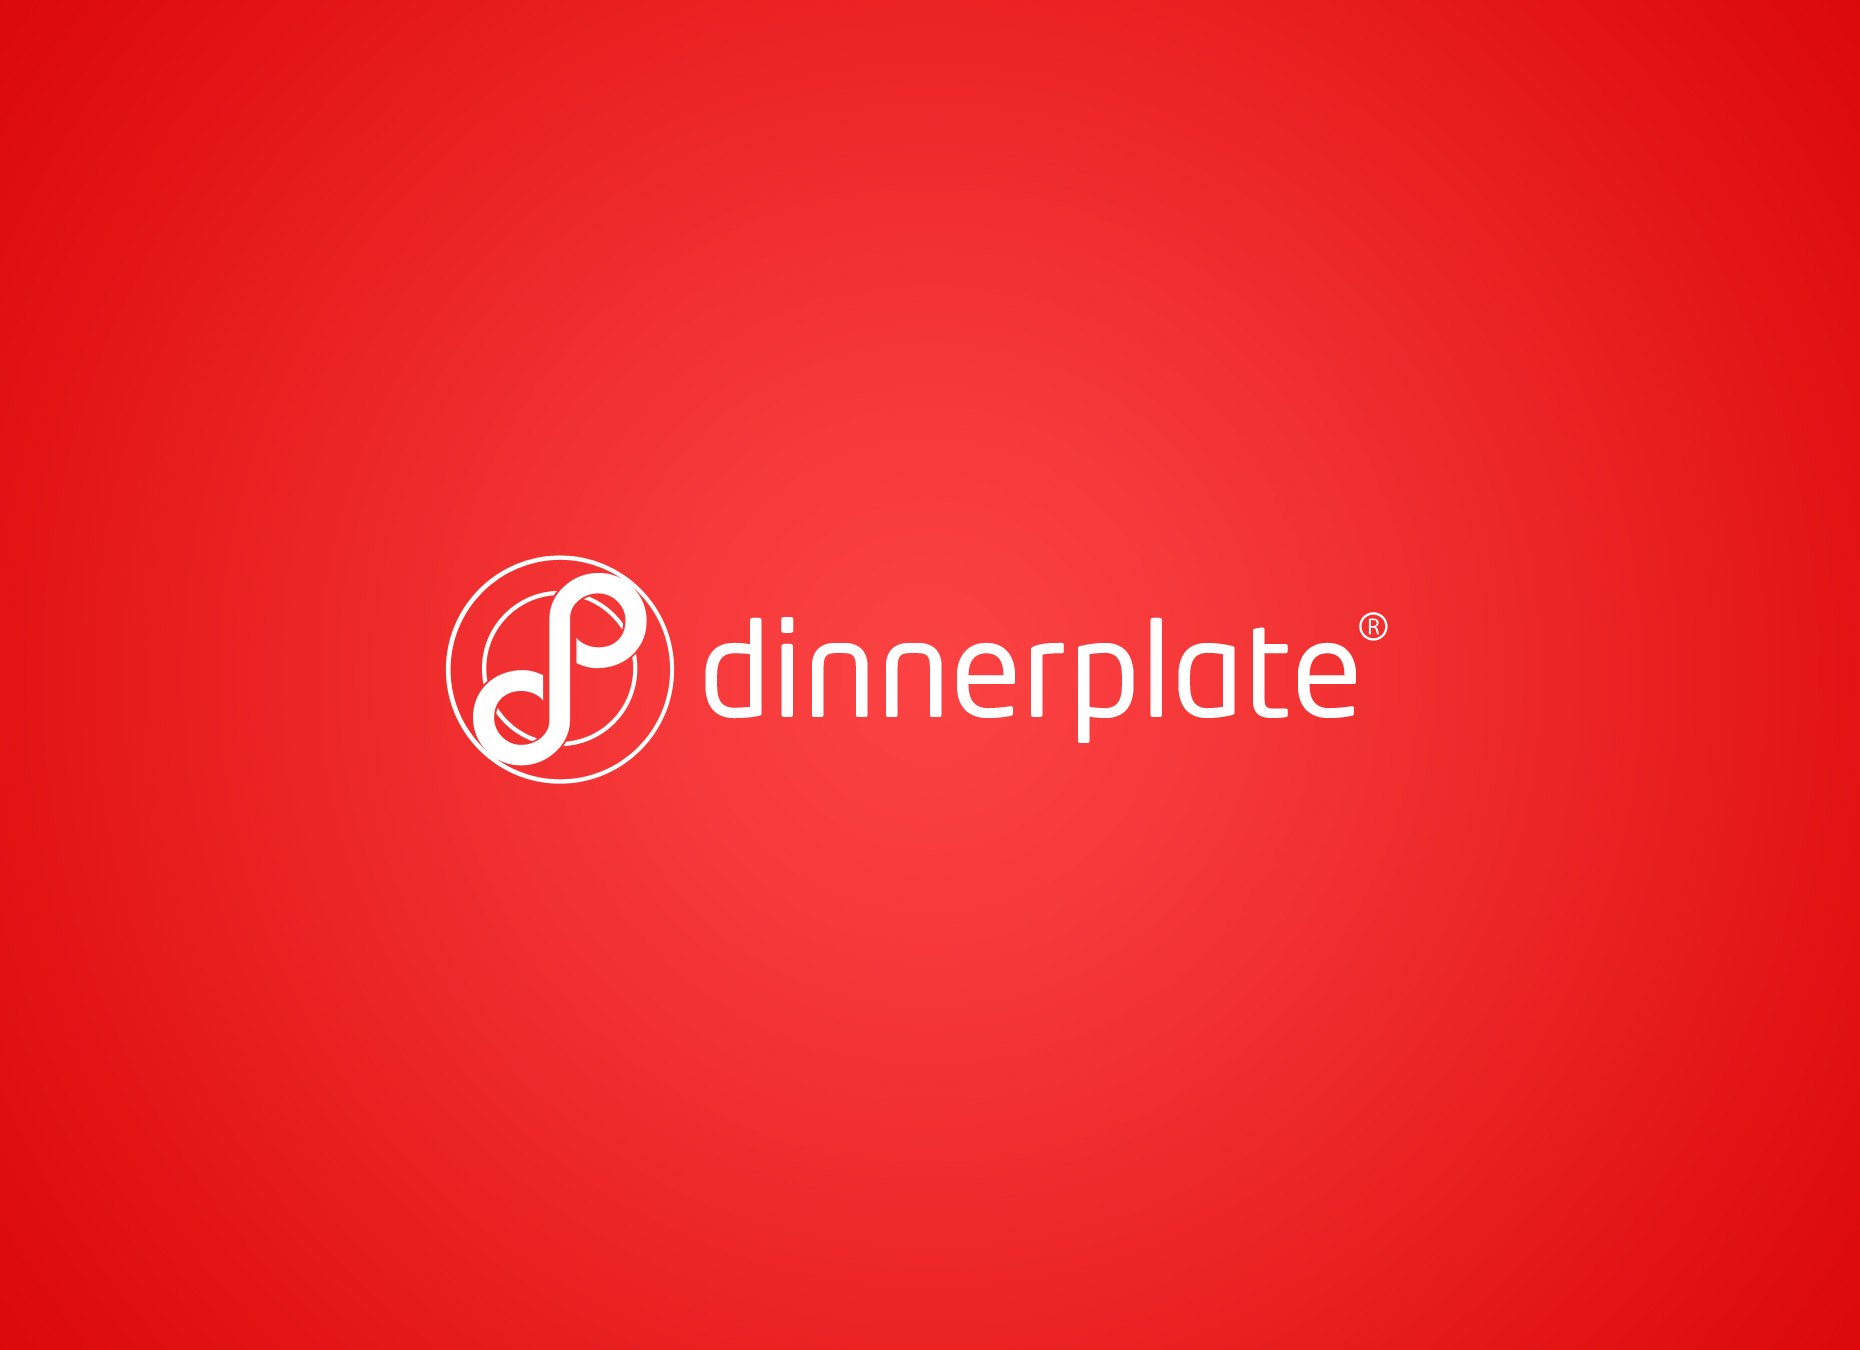 Logo Design by omARTist - Entry No. 99 in the Logo Design Contest Imaginative Logo Design for Dinner Plate.